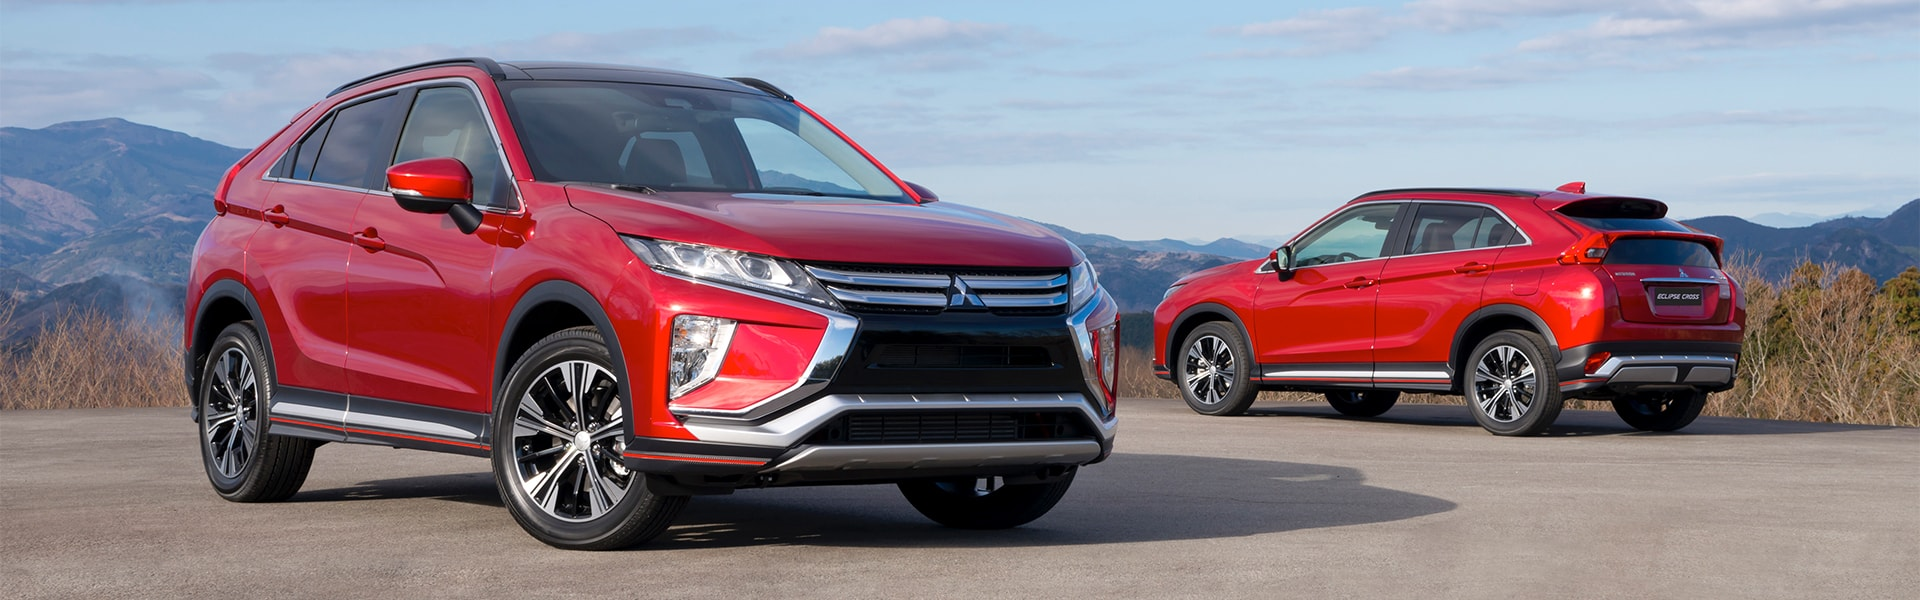 Rally-Red-2018-Mitsubishi-Eclipse-Cross-in-Sunlight-d.jpg